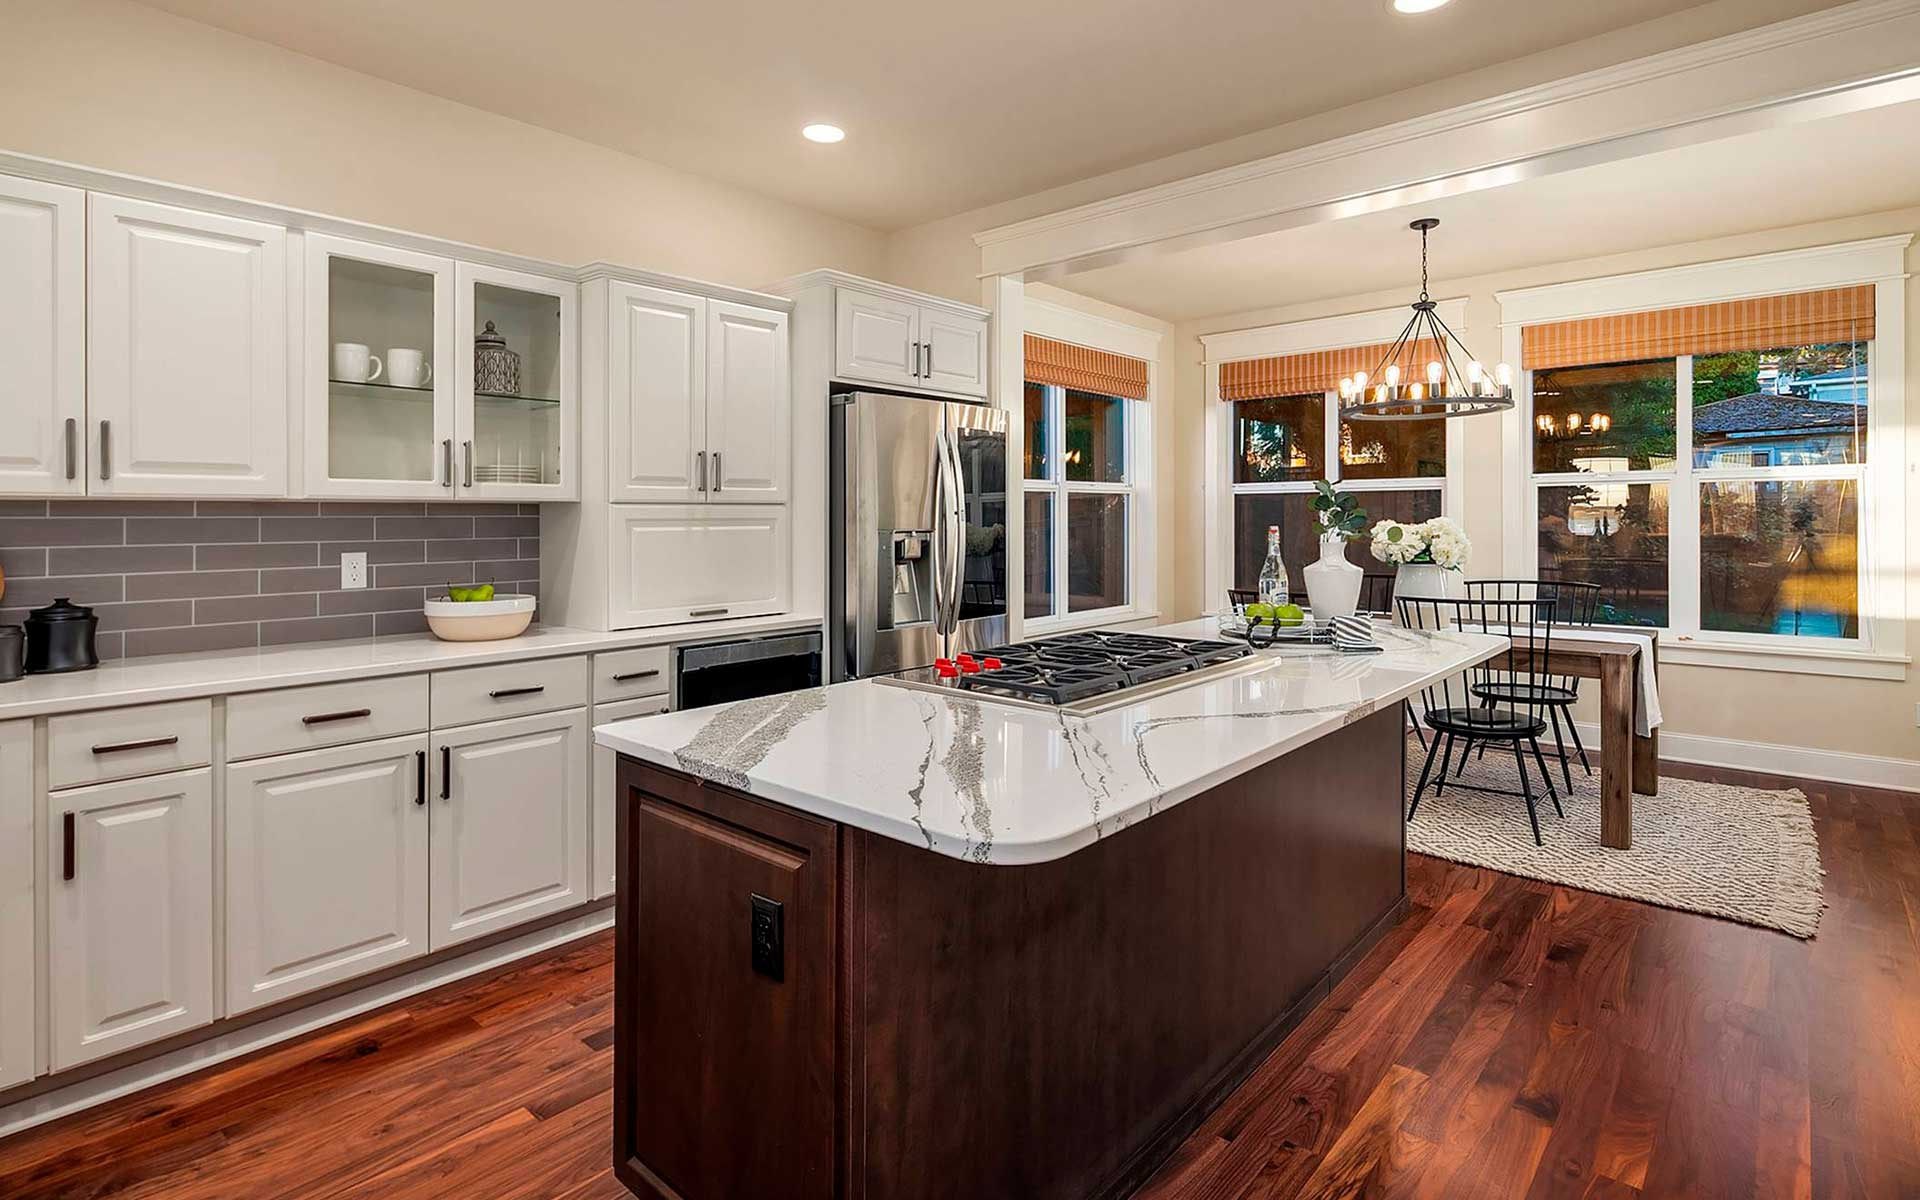 East Coast Inspiration in Lakeview Terrace photo